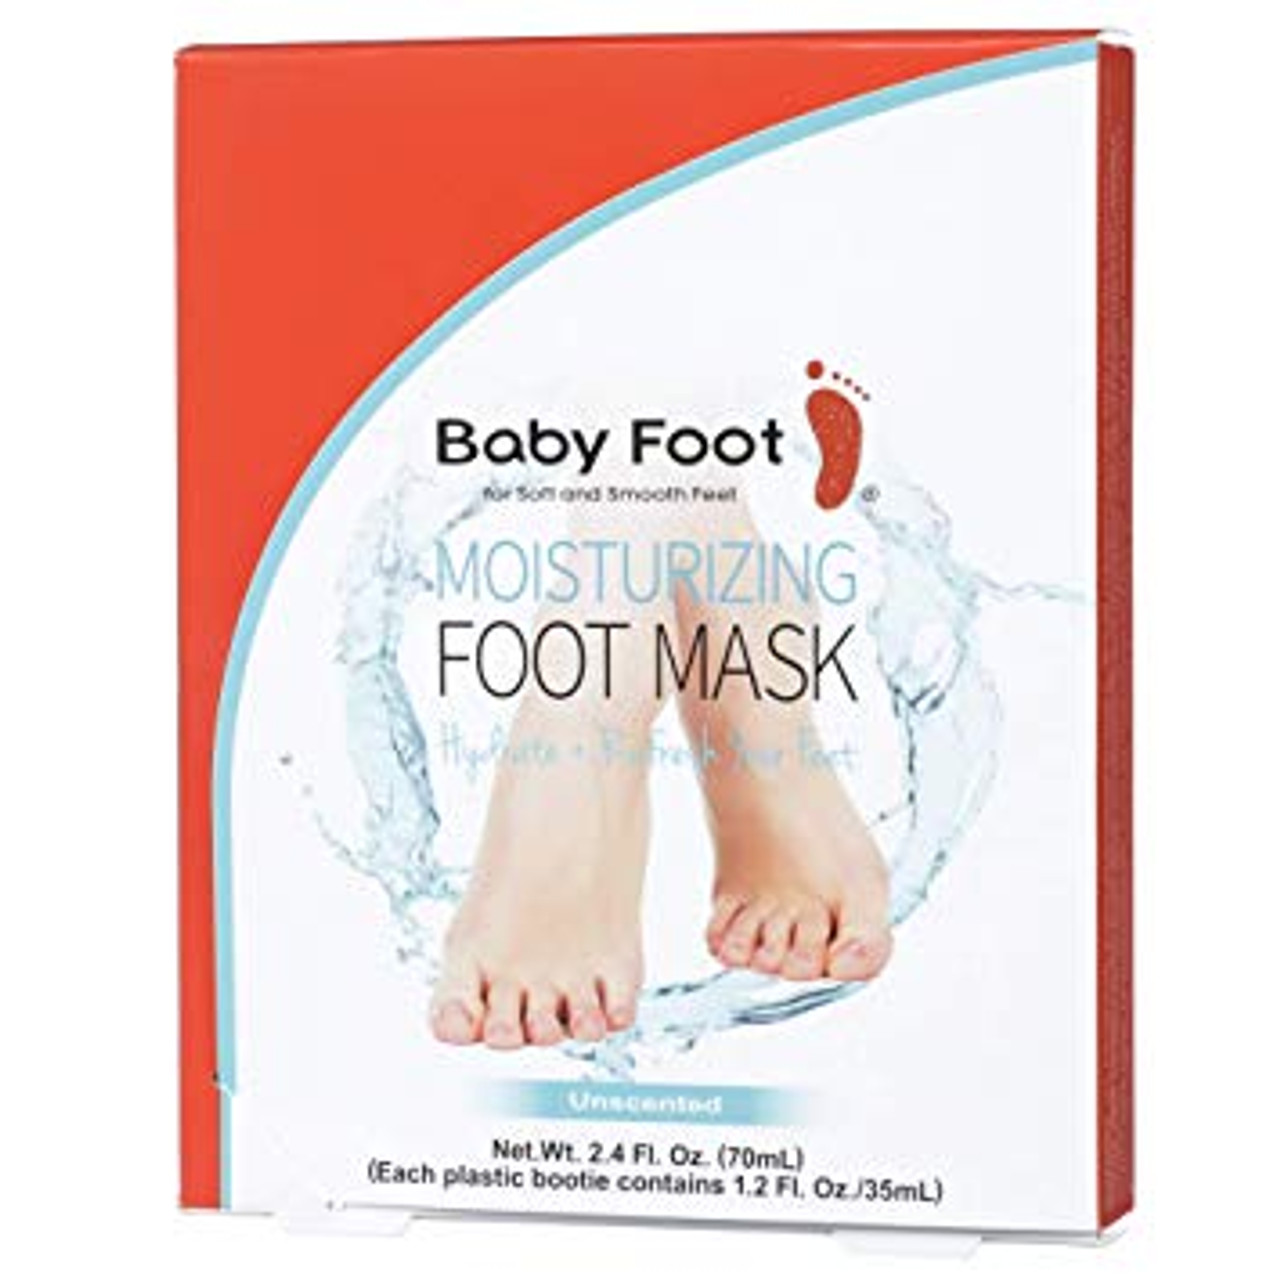 Baby Foot Unscented Moisturizing Foot Mask